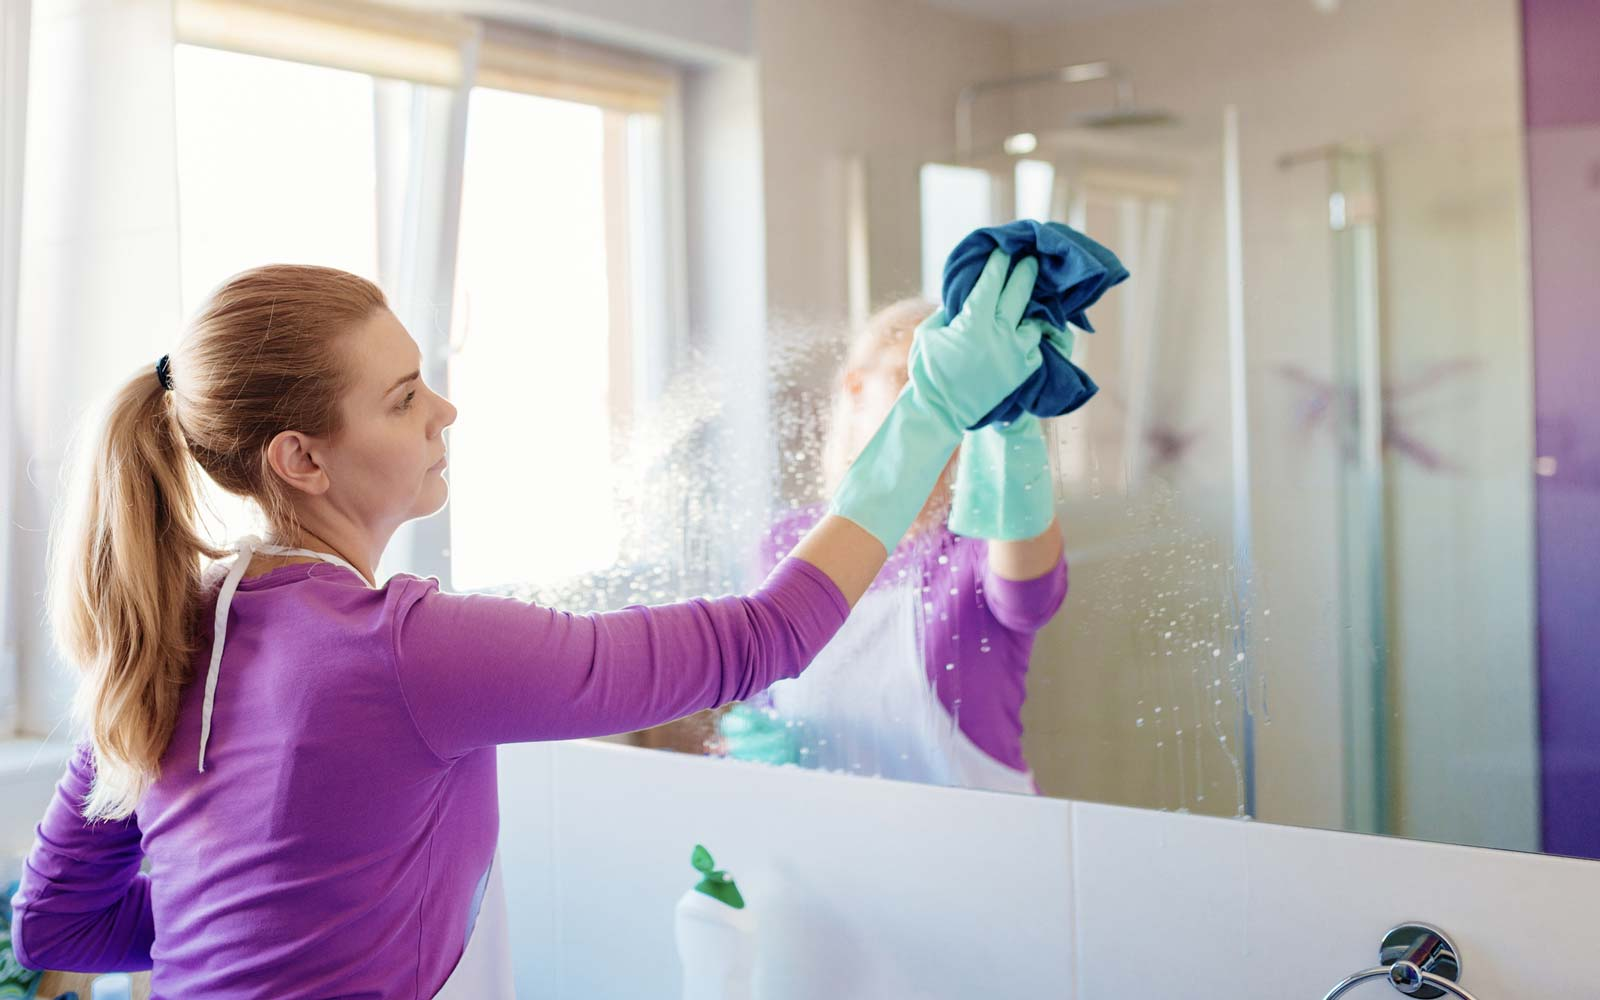 Doing Housework Could Help You Live Longer, According to Research